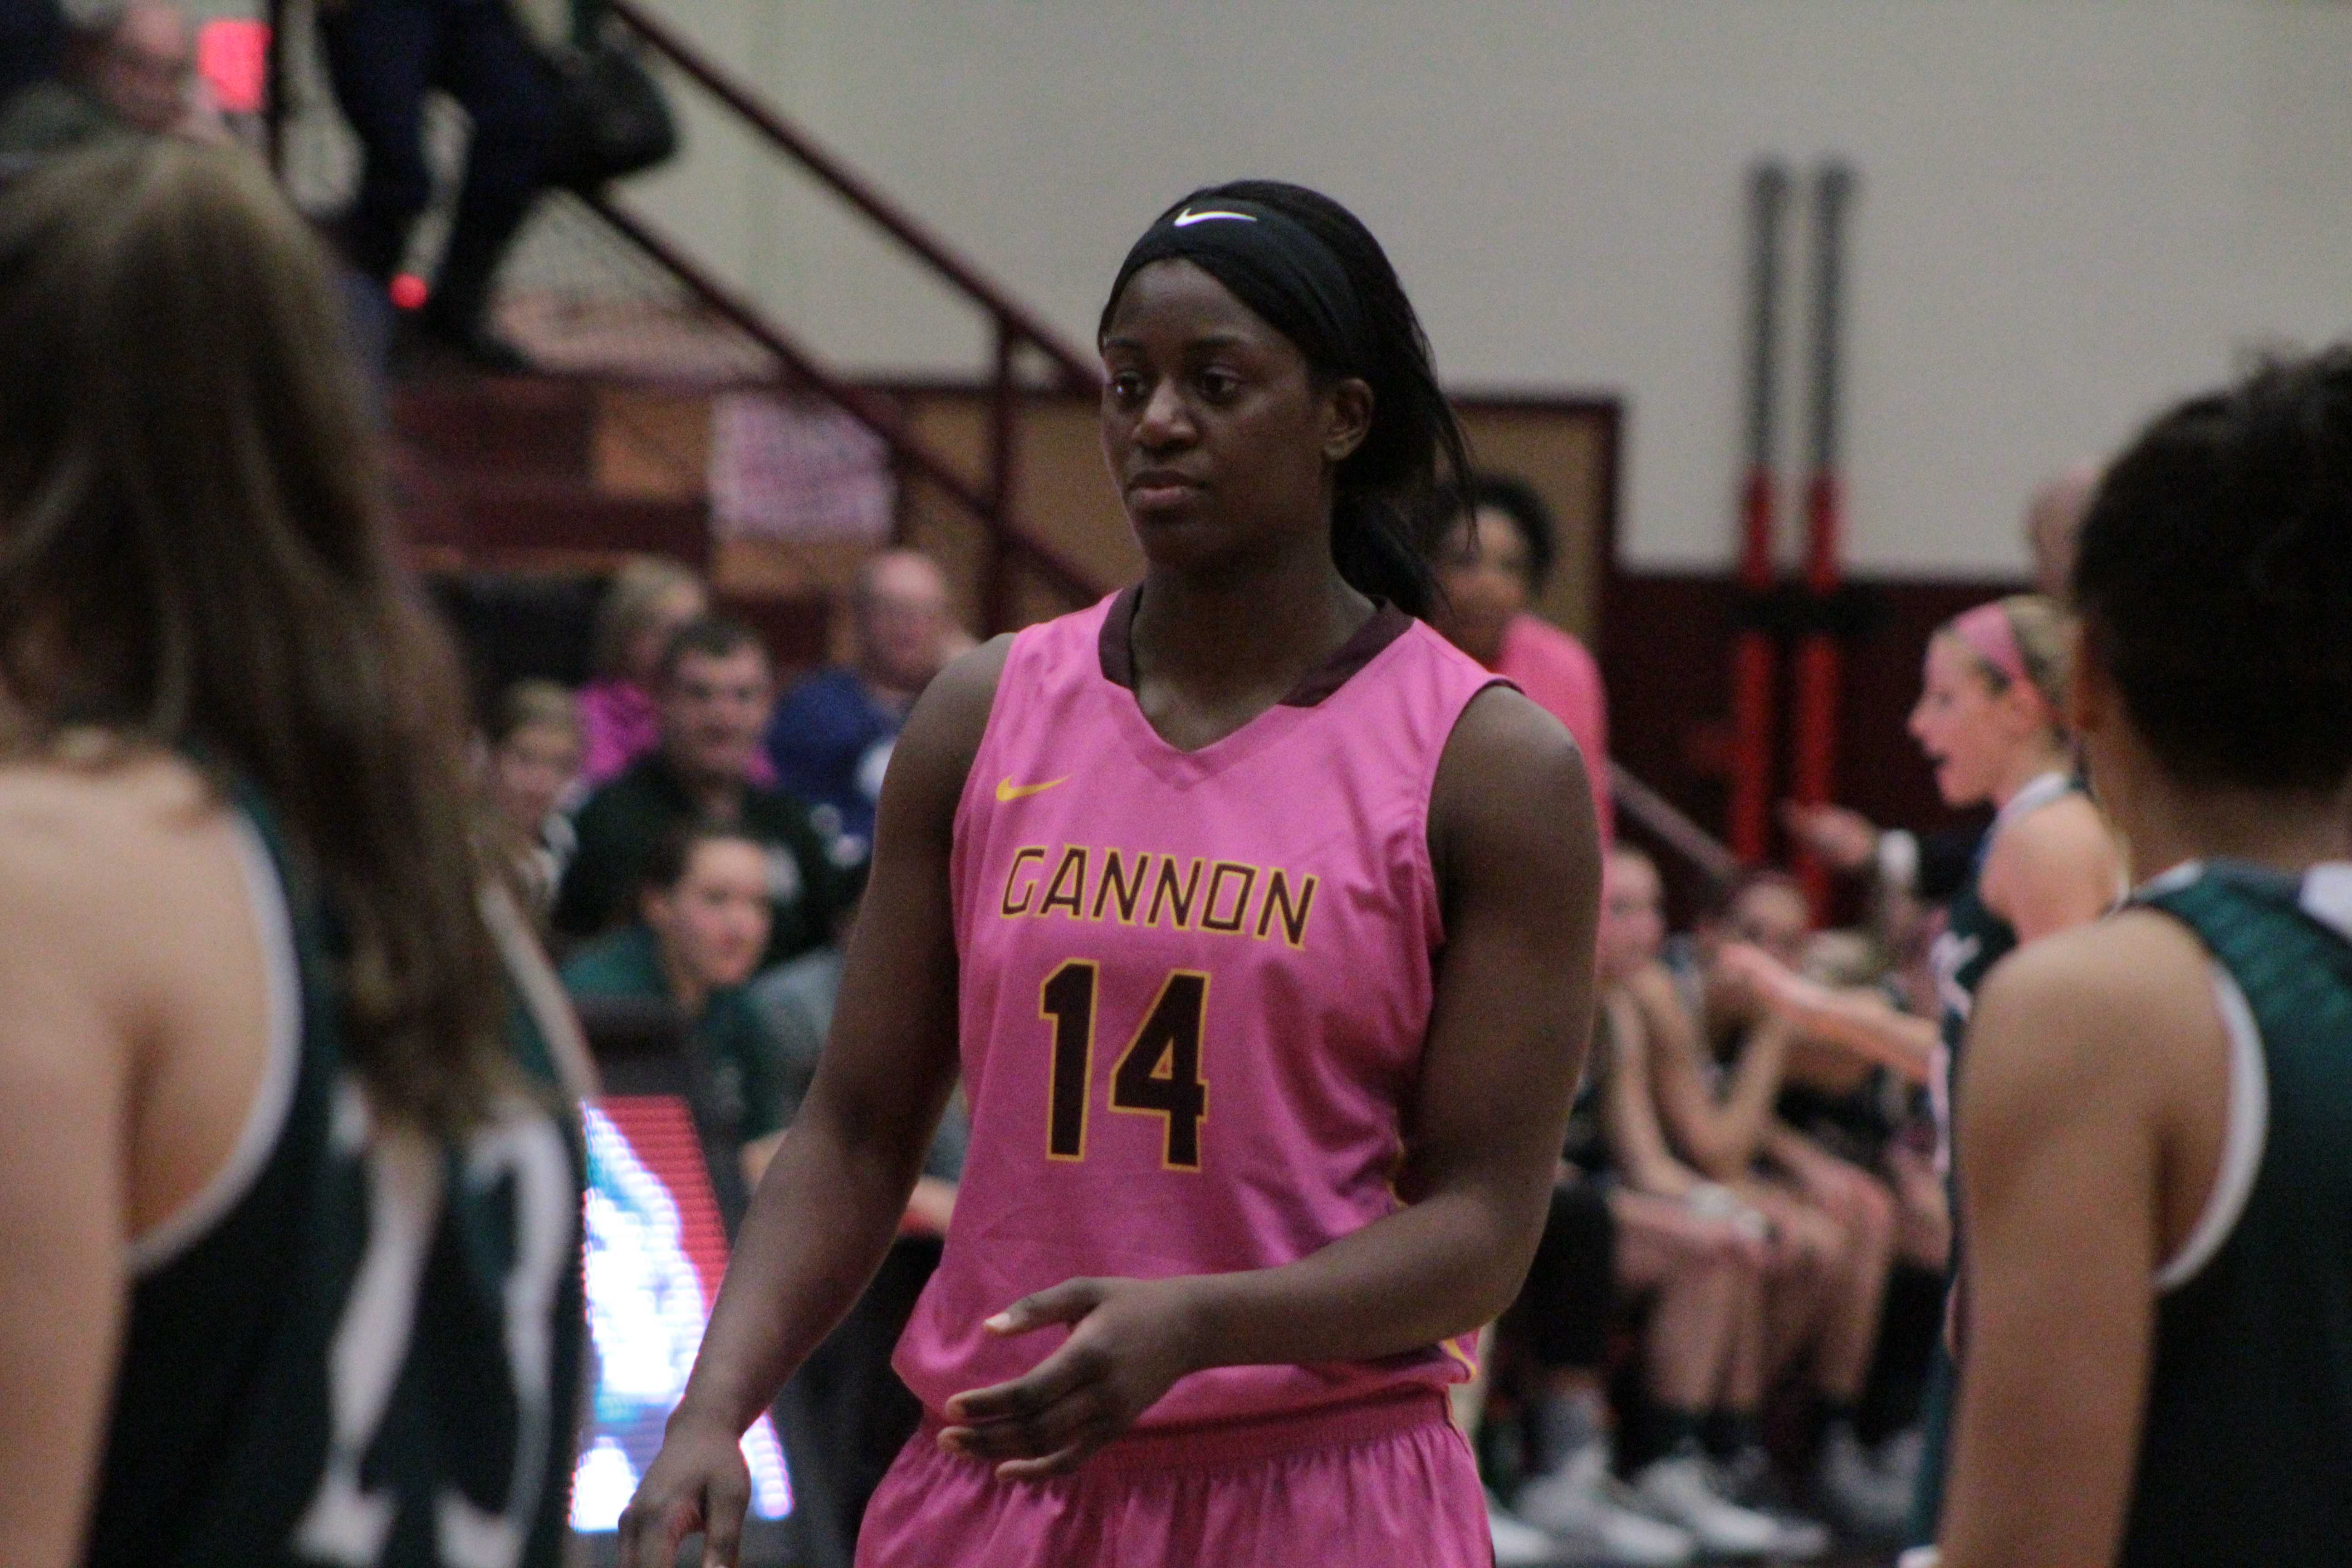 Women's basketball loses to IUP, 75-70